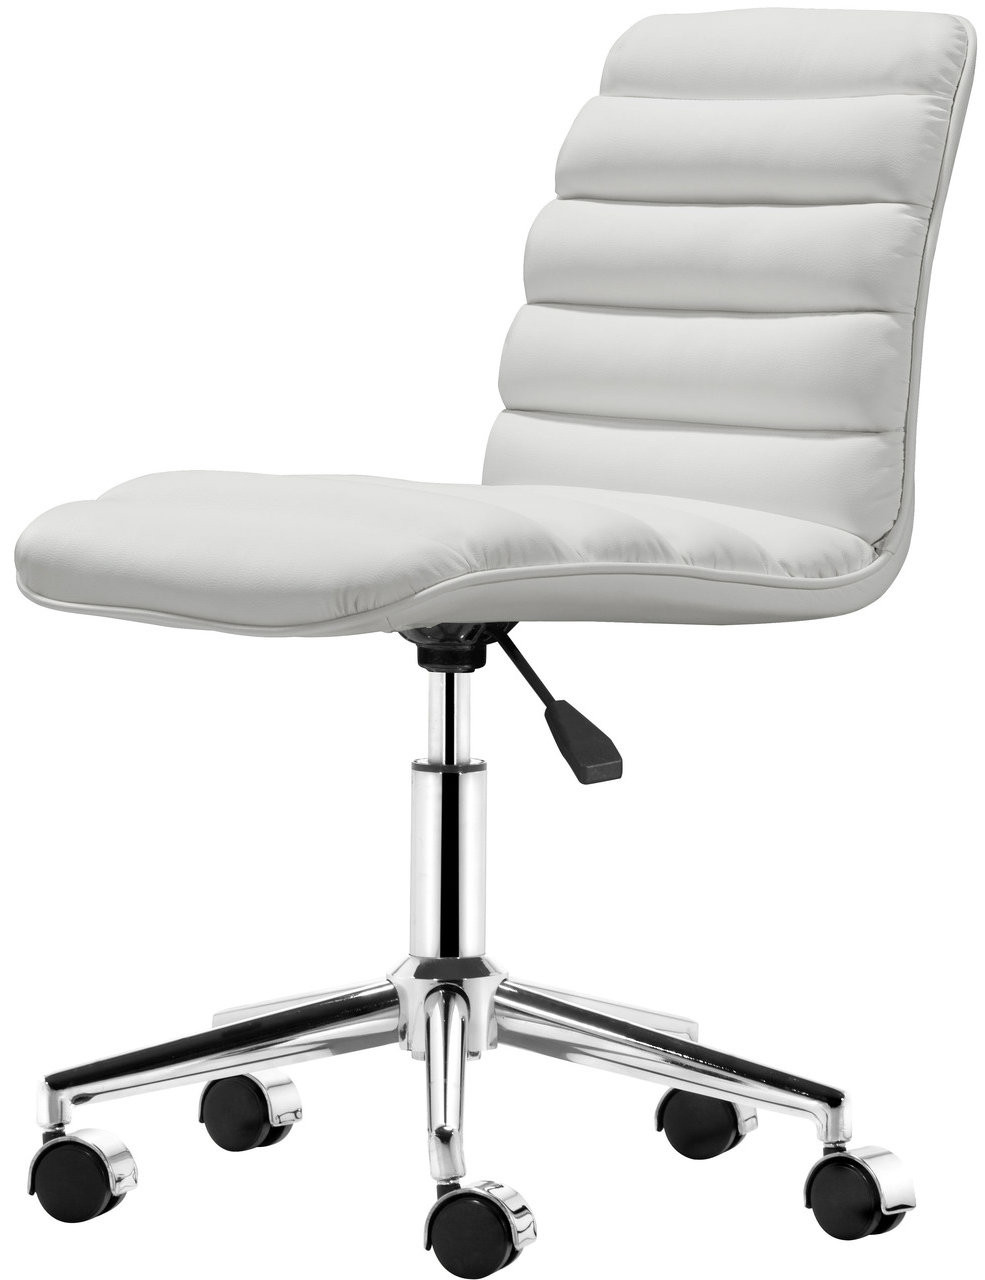 zuo admire office chair white  sc 1 st  Advanced Interior Designs & Zuo Modern Admire Office Chair White Zuo Modern 205711